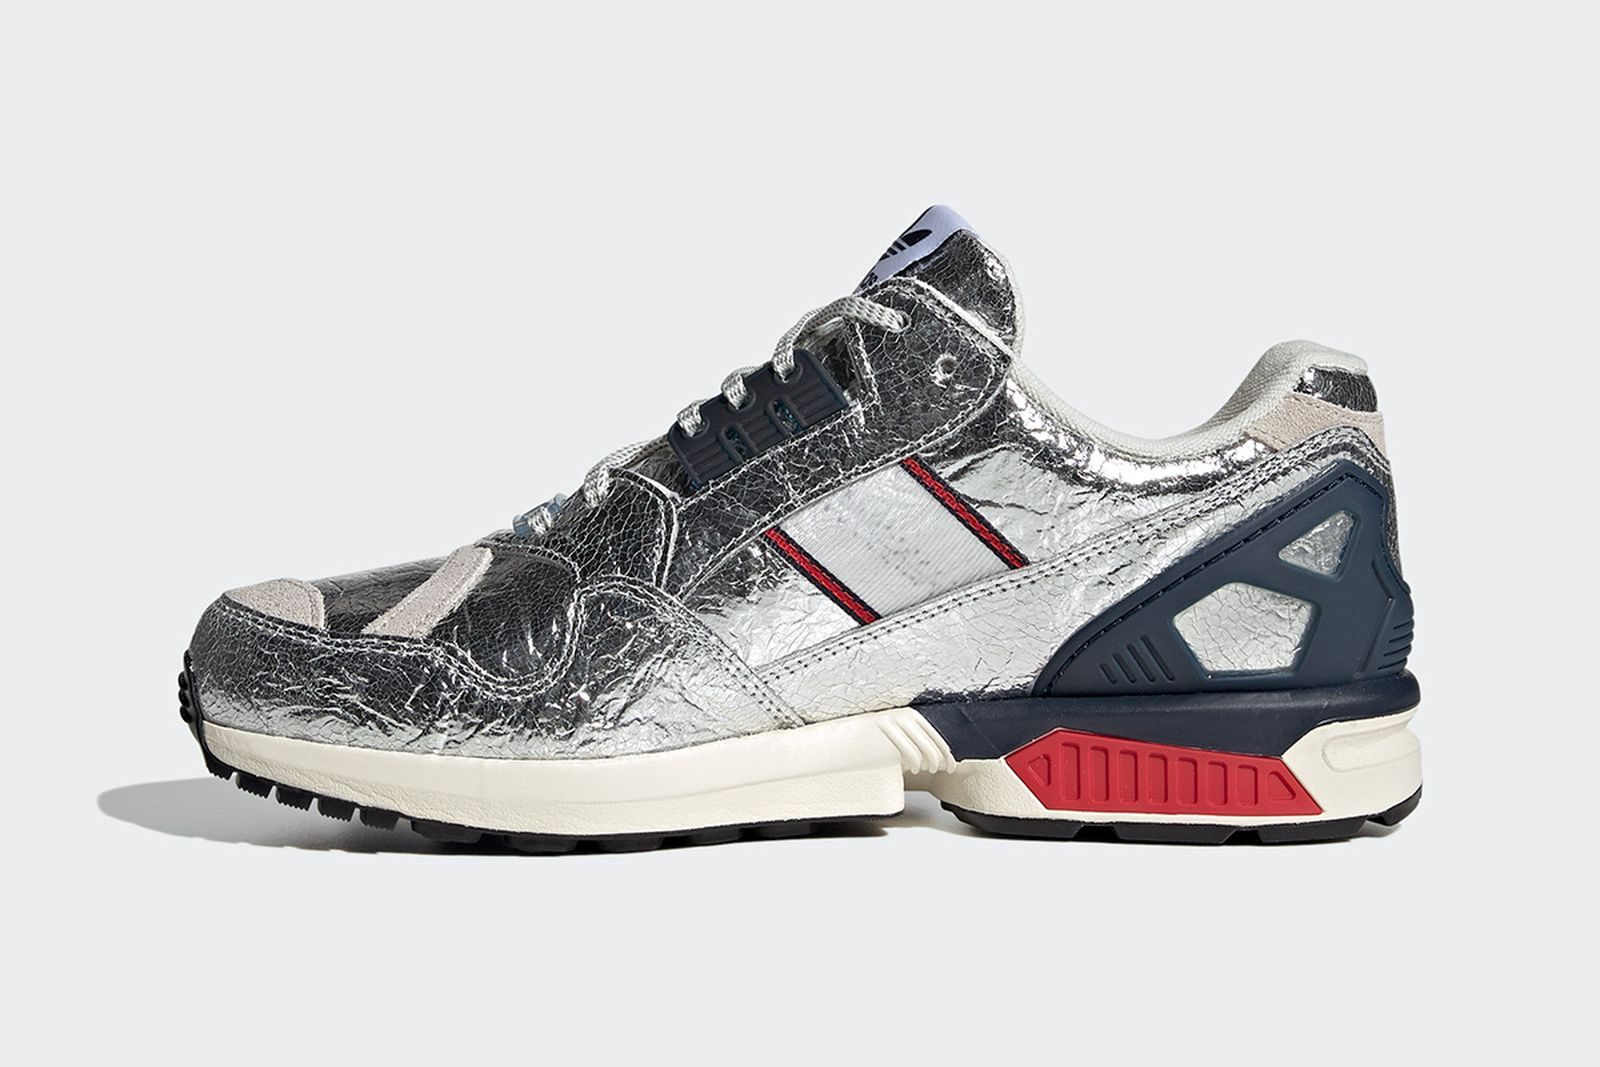 concepts-adidas-zx-9000-release-date-price-02